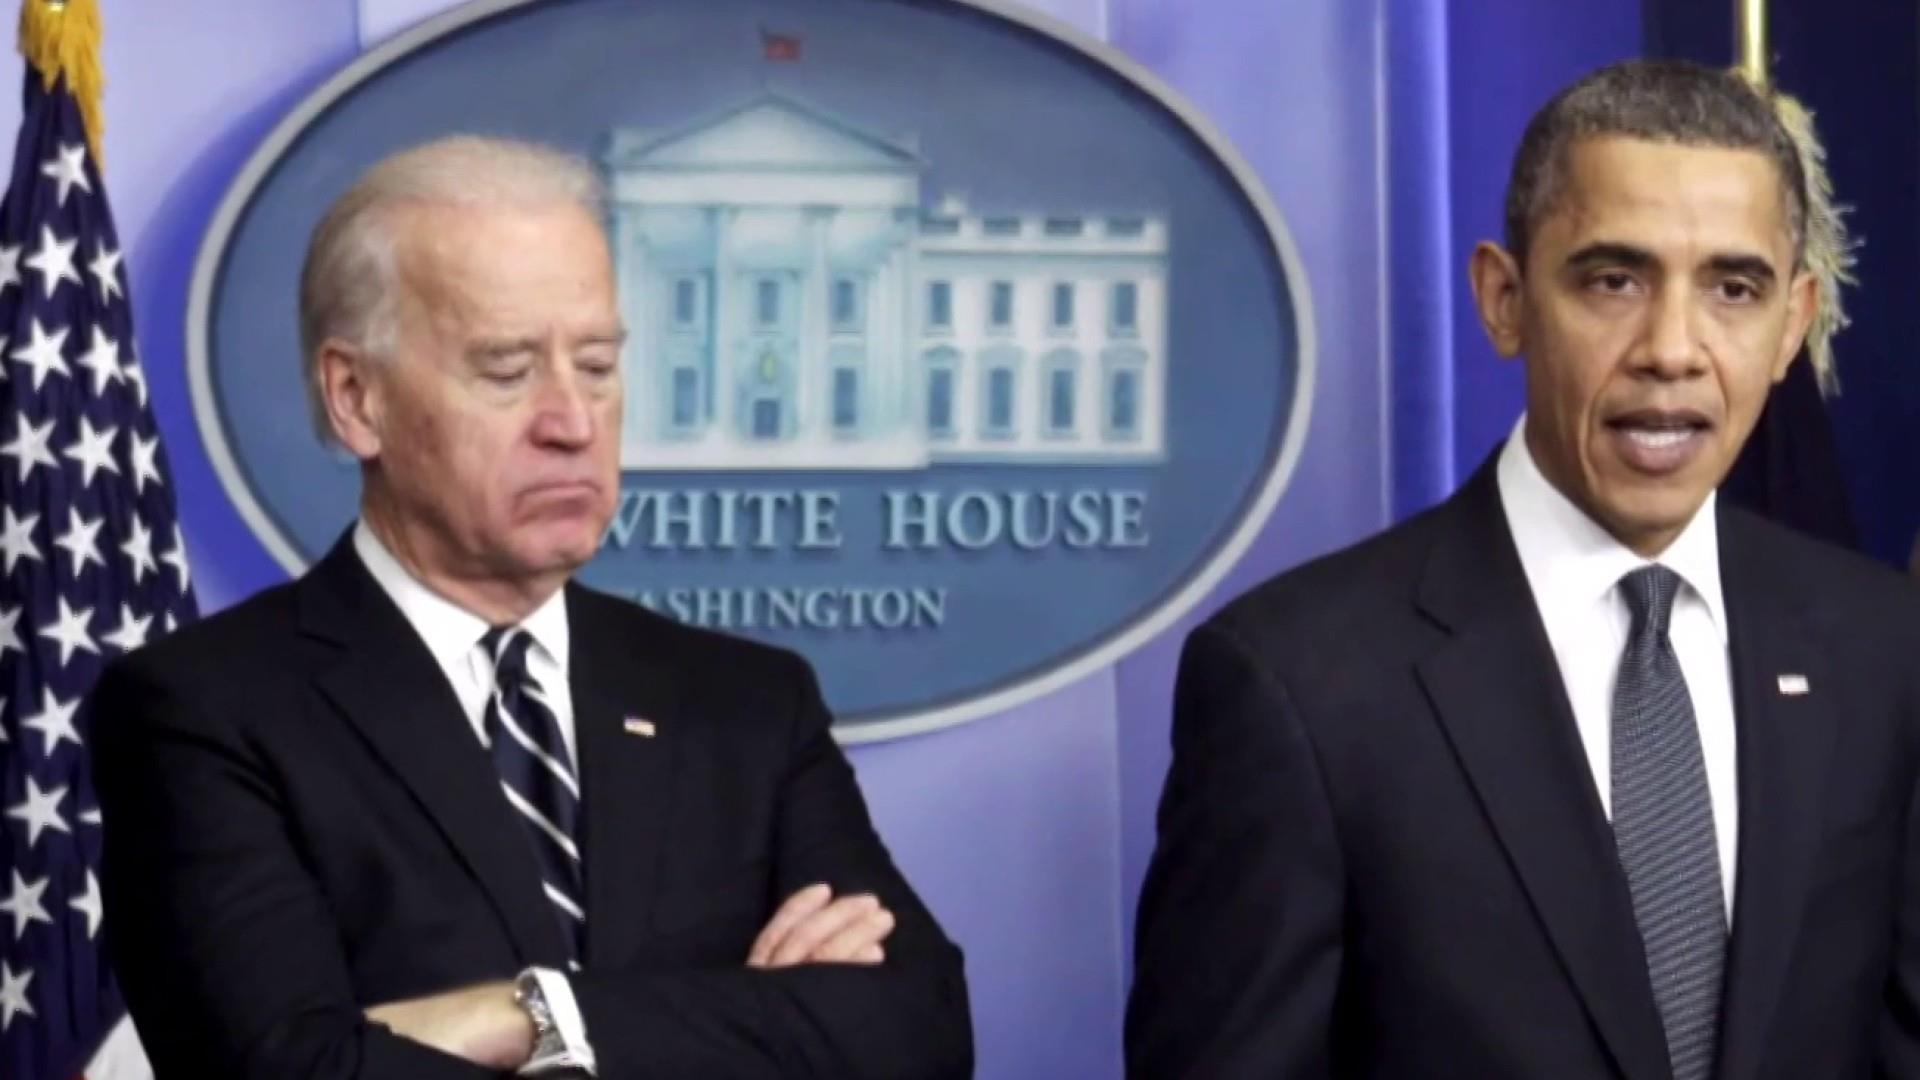 Biden is sticking to the script, but is it paying off?